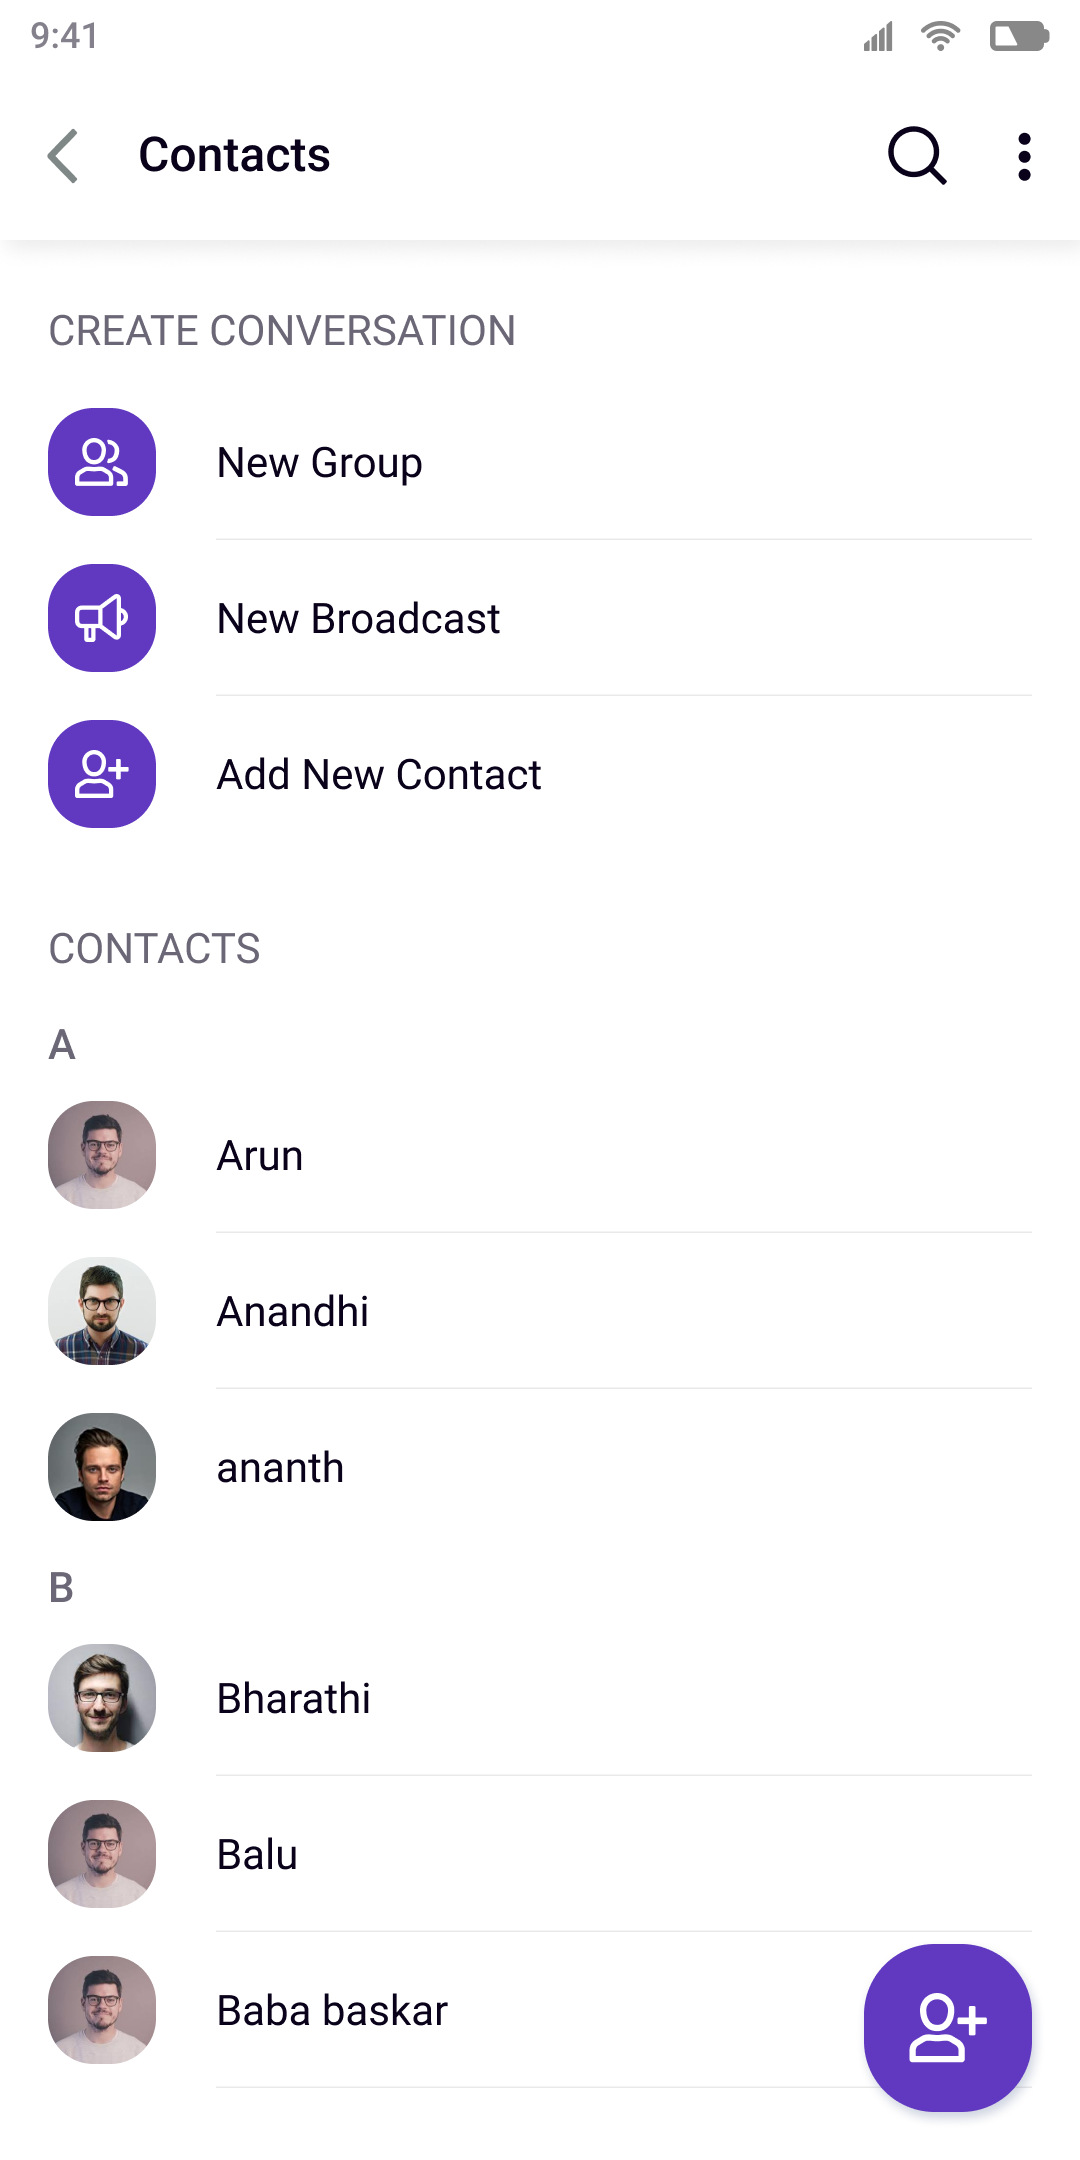 Contacts Screen in UI